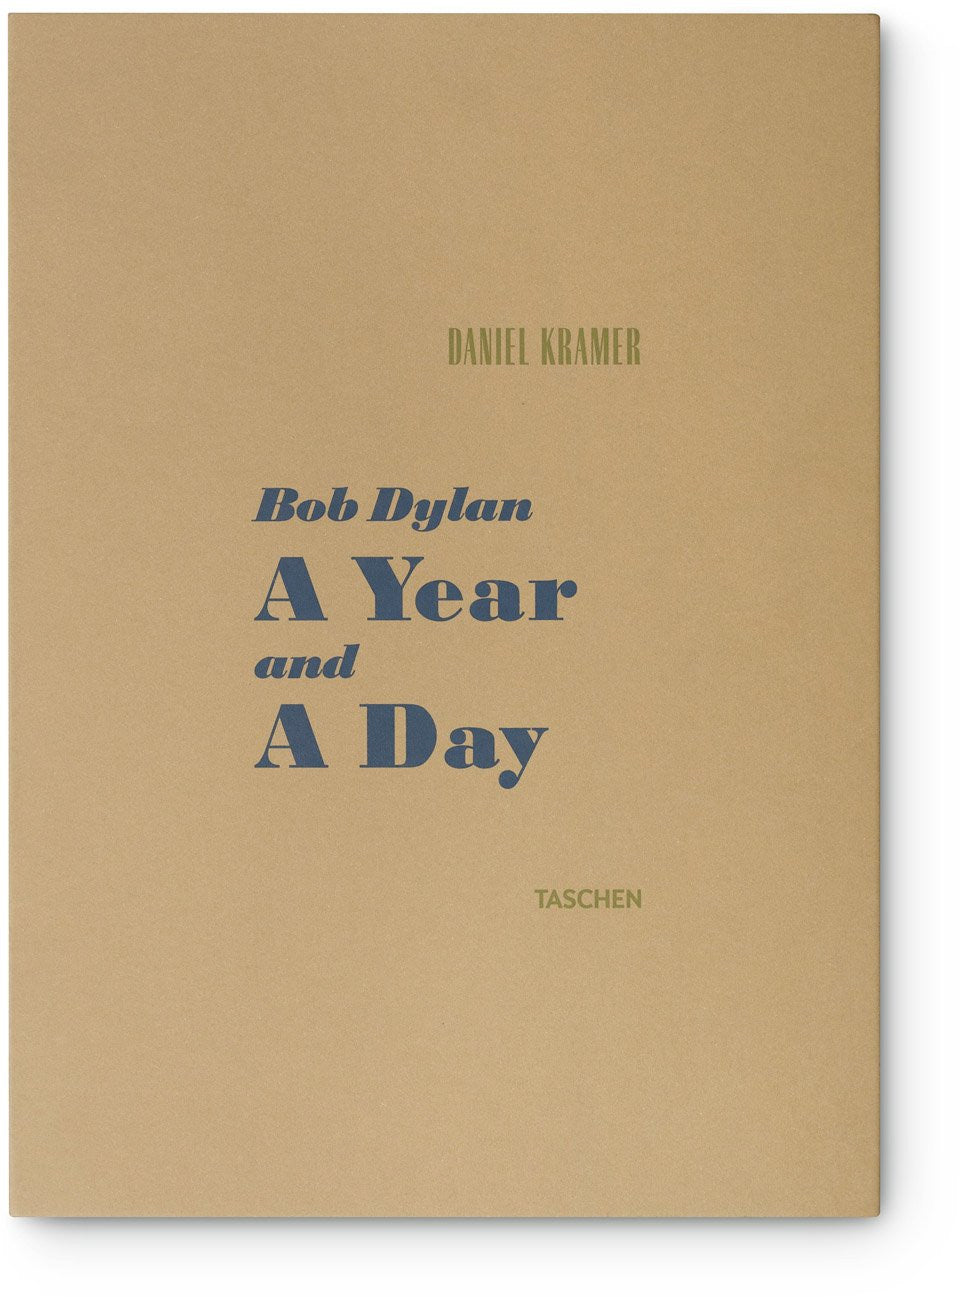 Daniel Kramer: Bob Dylan - A Year and a Day